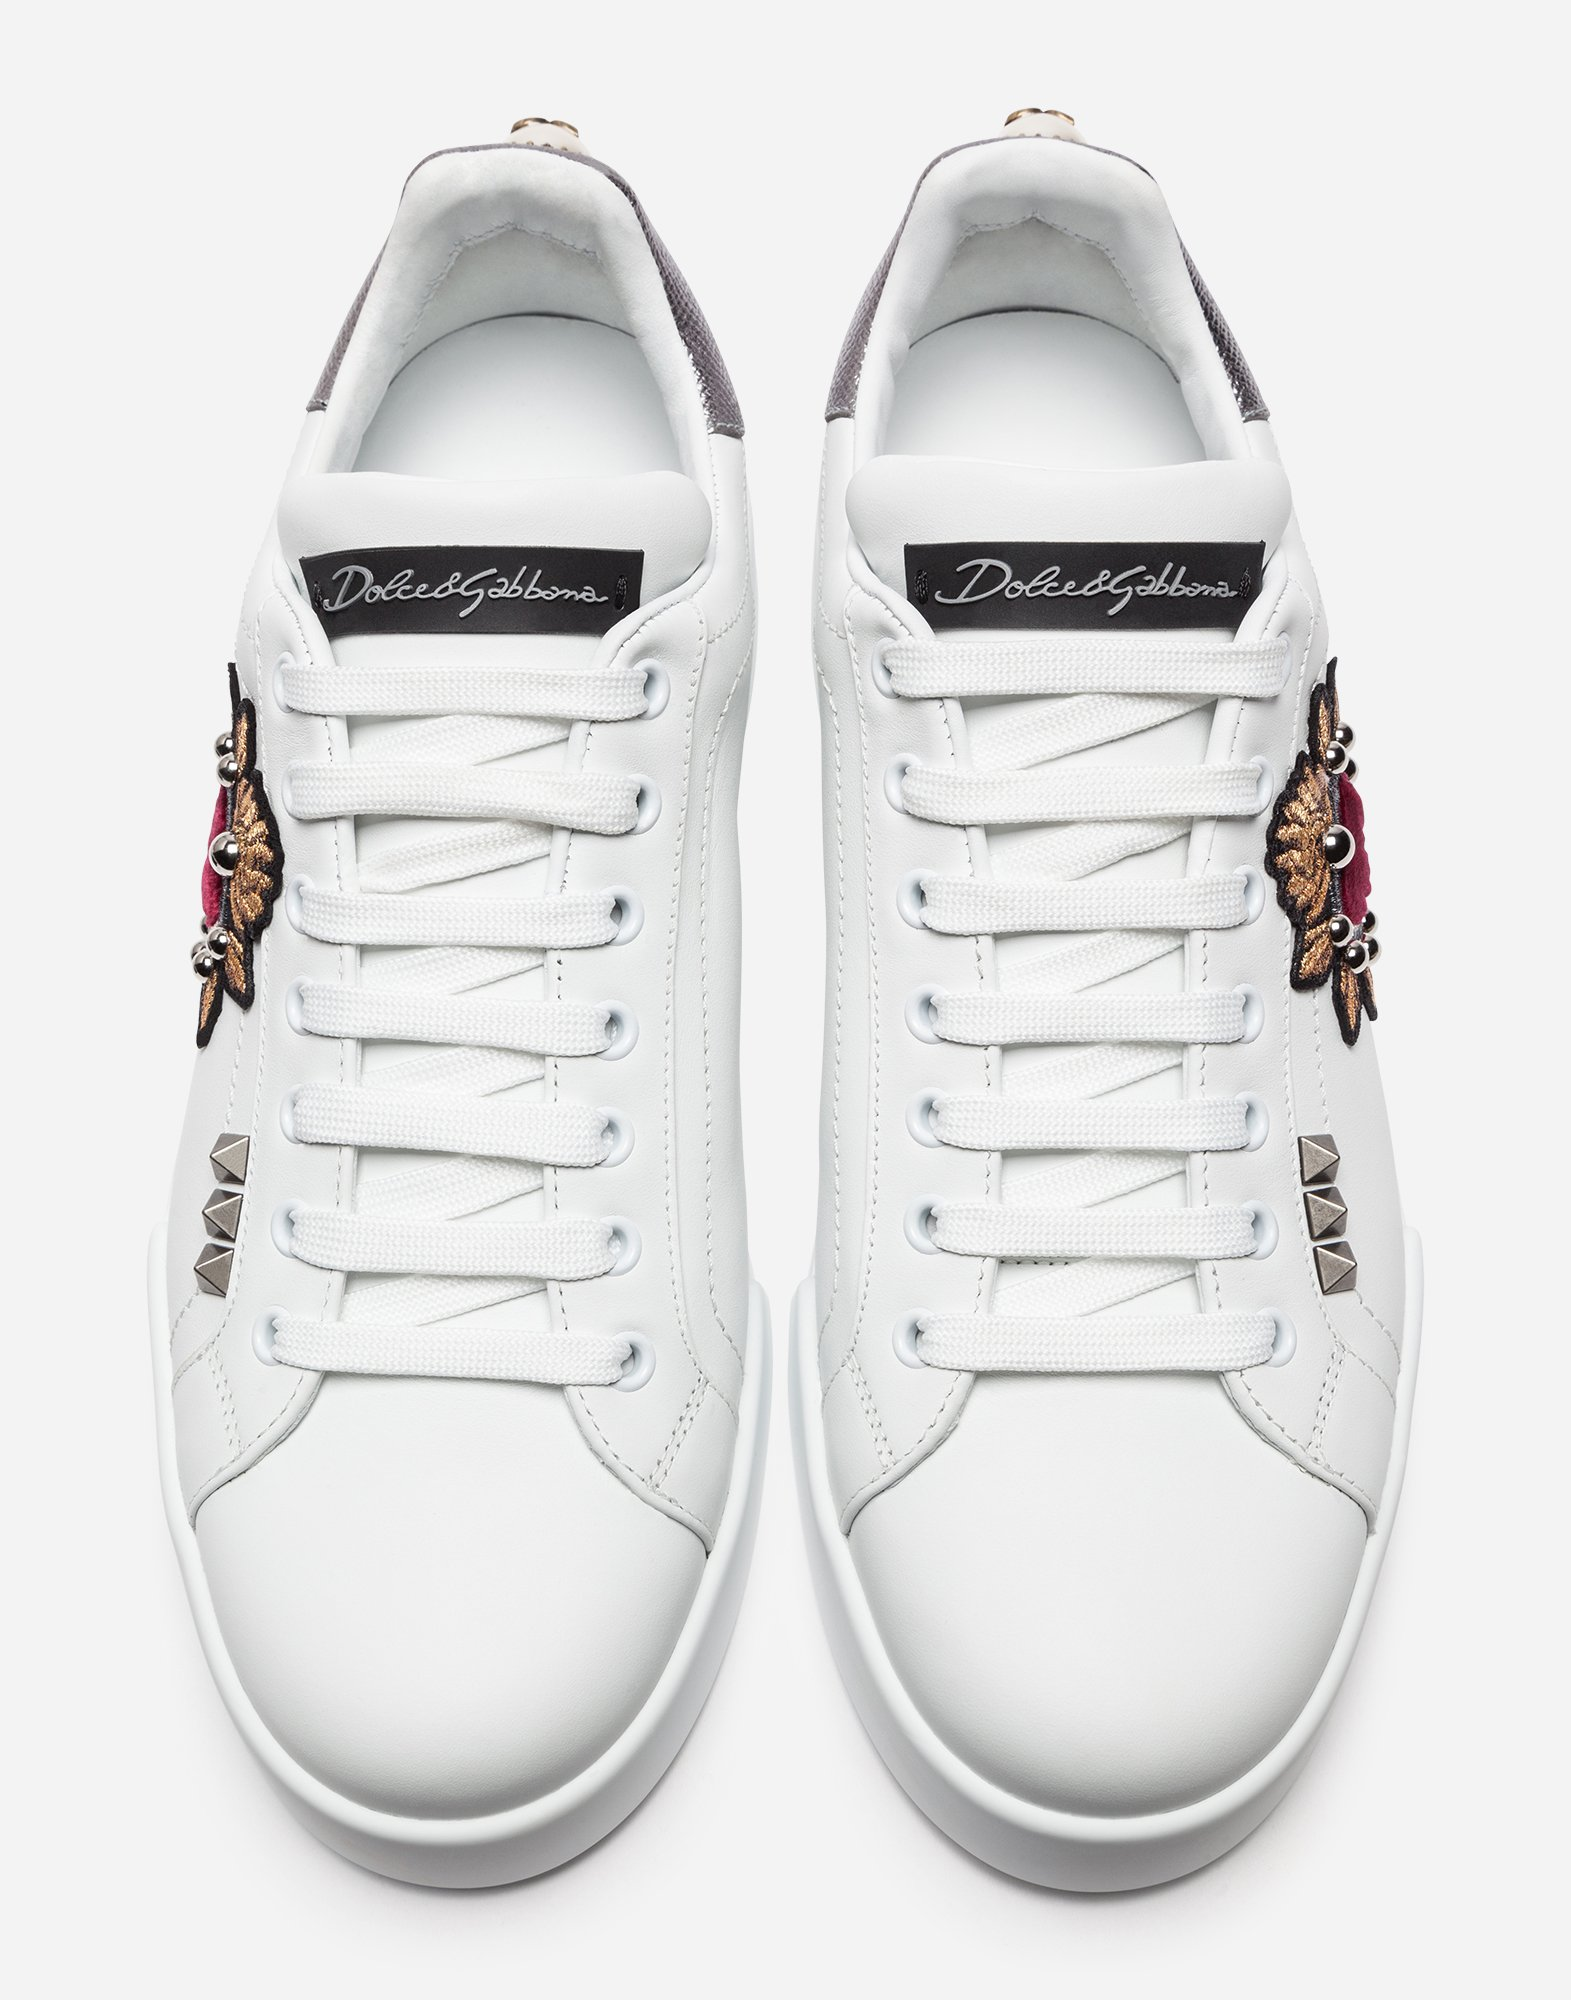 PORTOFINO SNEAKERS IN NAPPA CALFSKIN WITH PATCHES